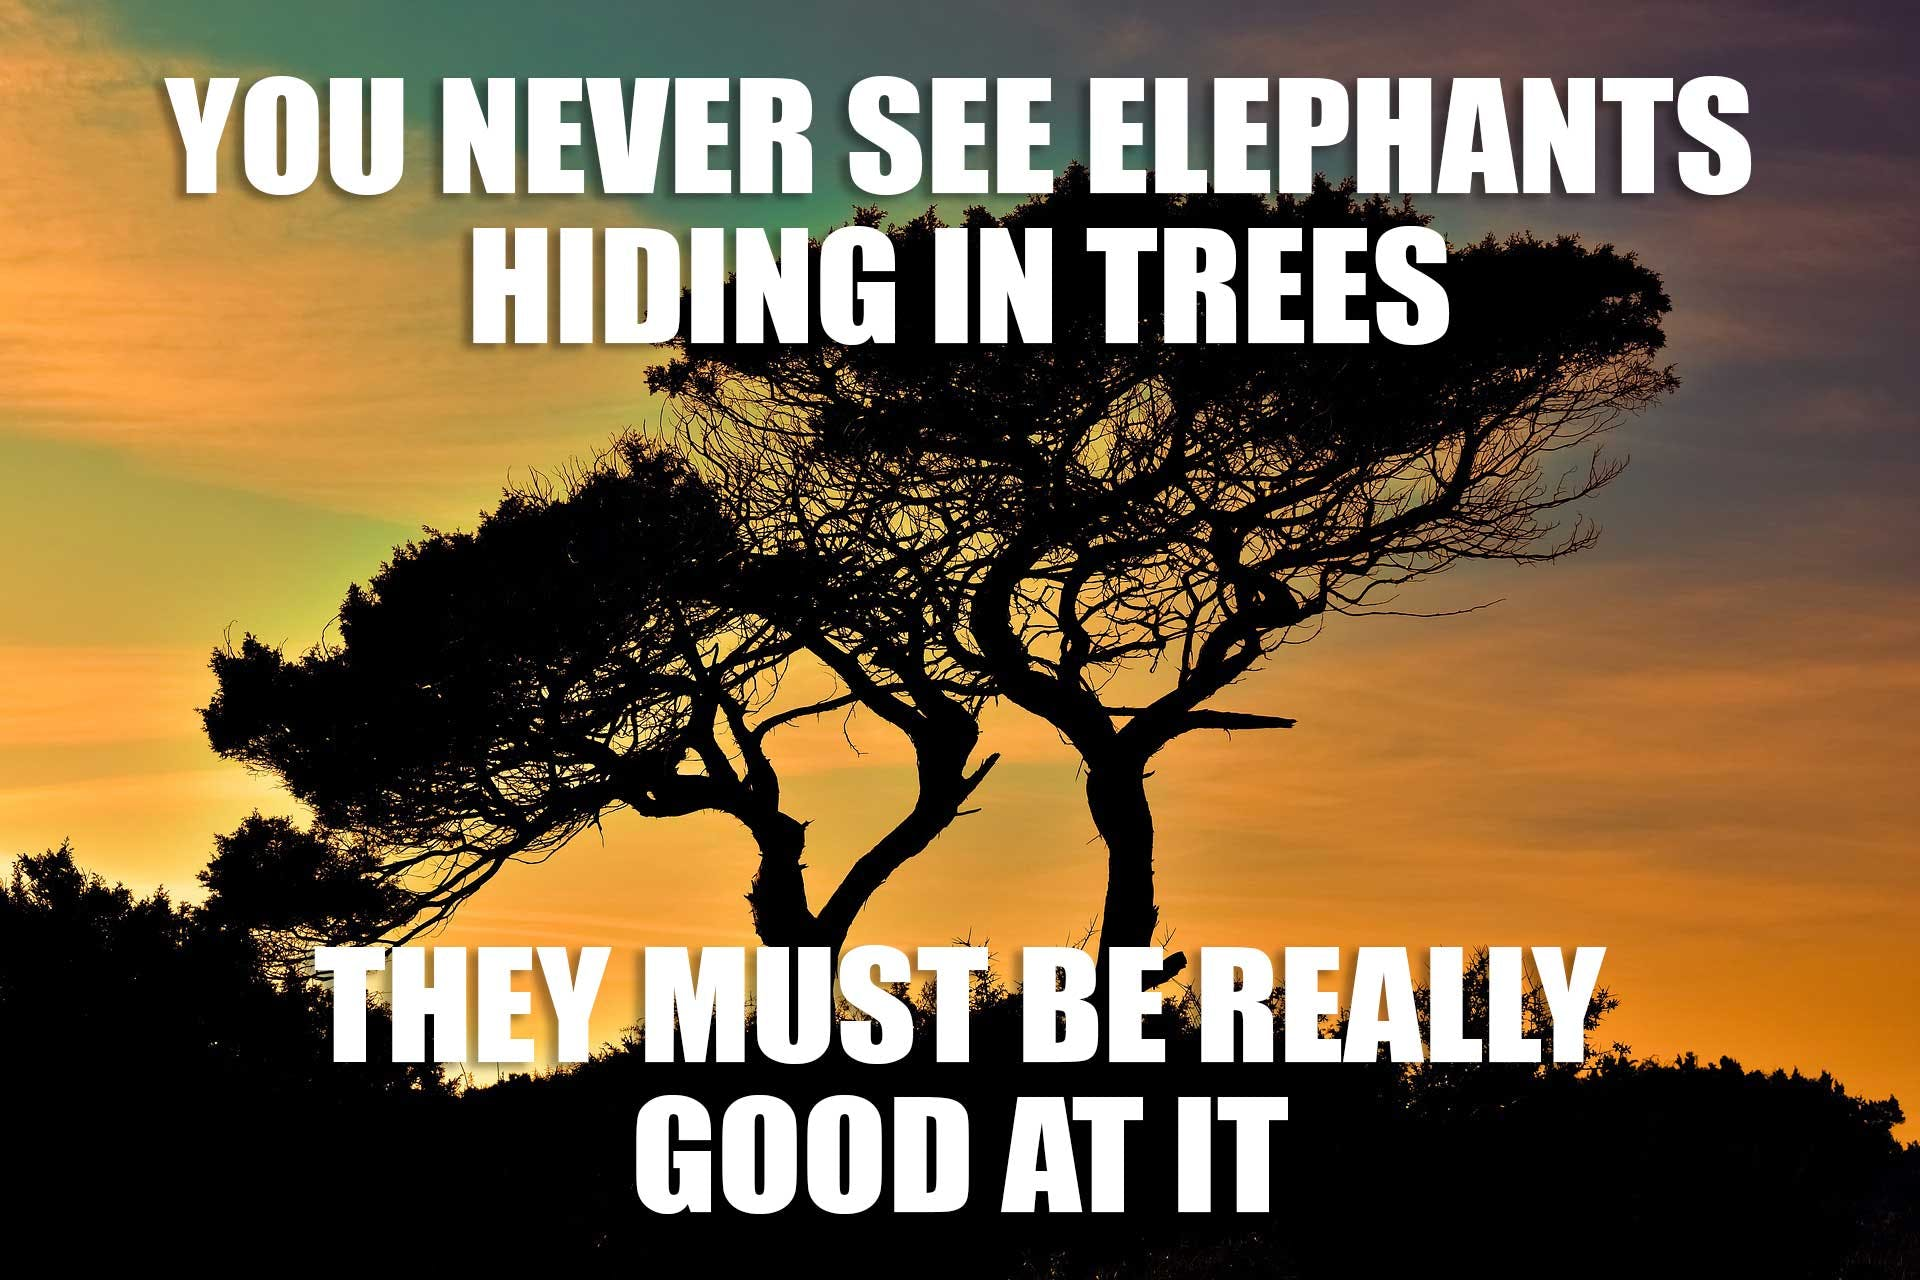 You never see elephants hiding in trees...